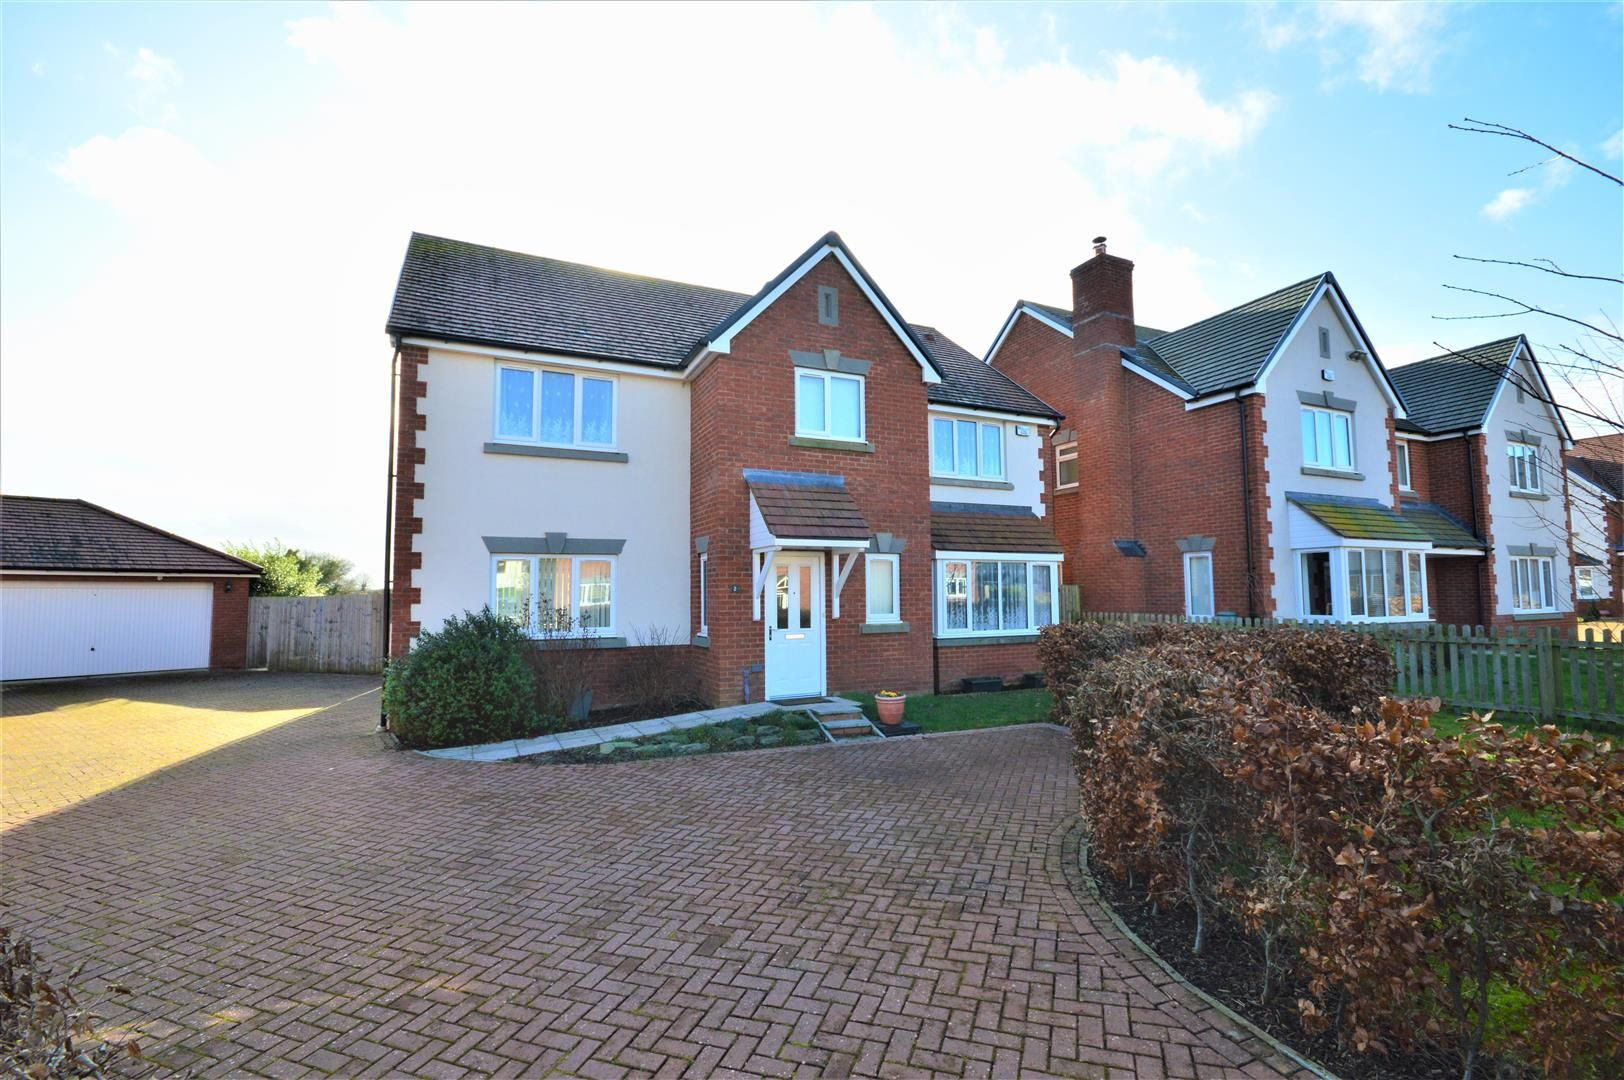 4 bed detached for sale in Wellington, HR4